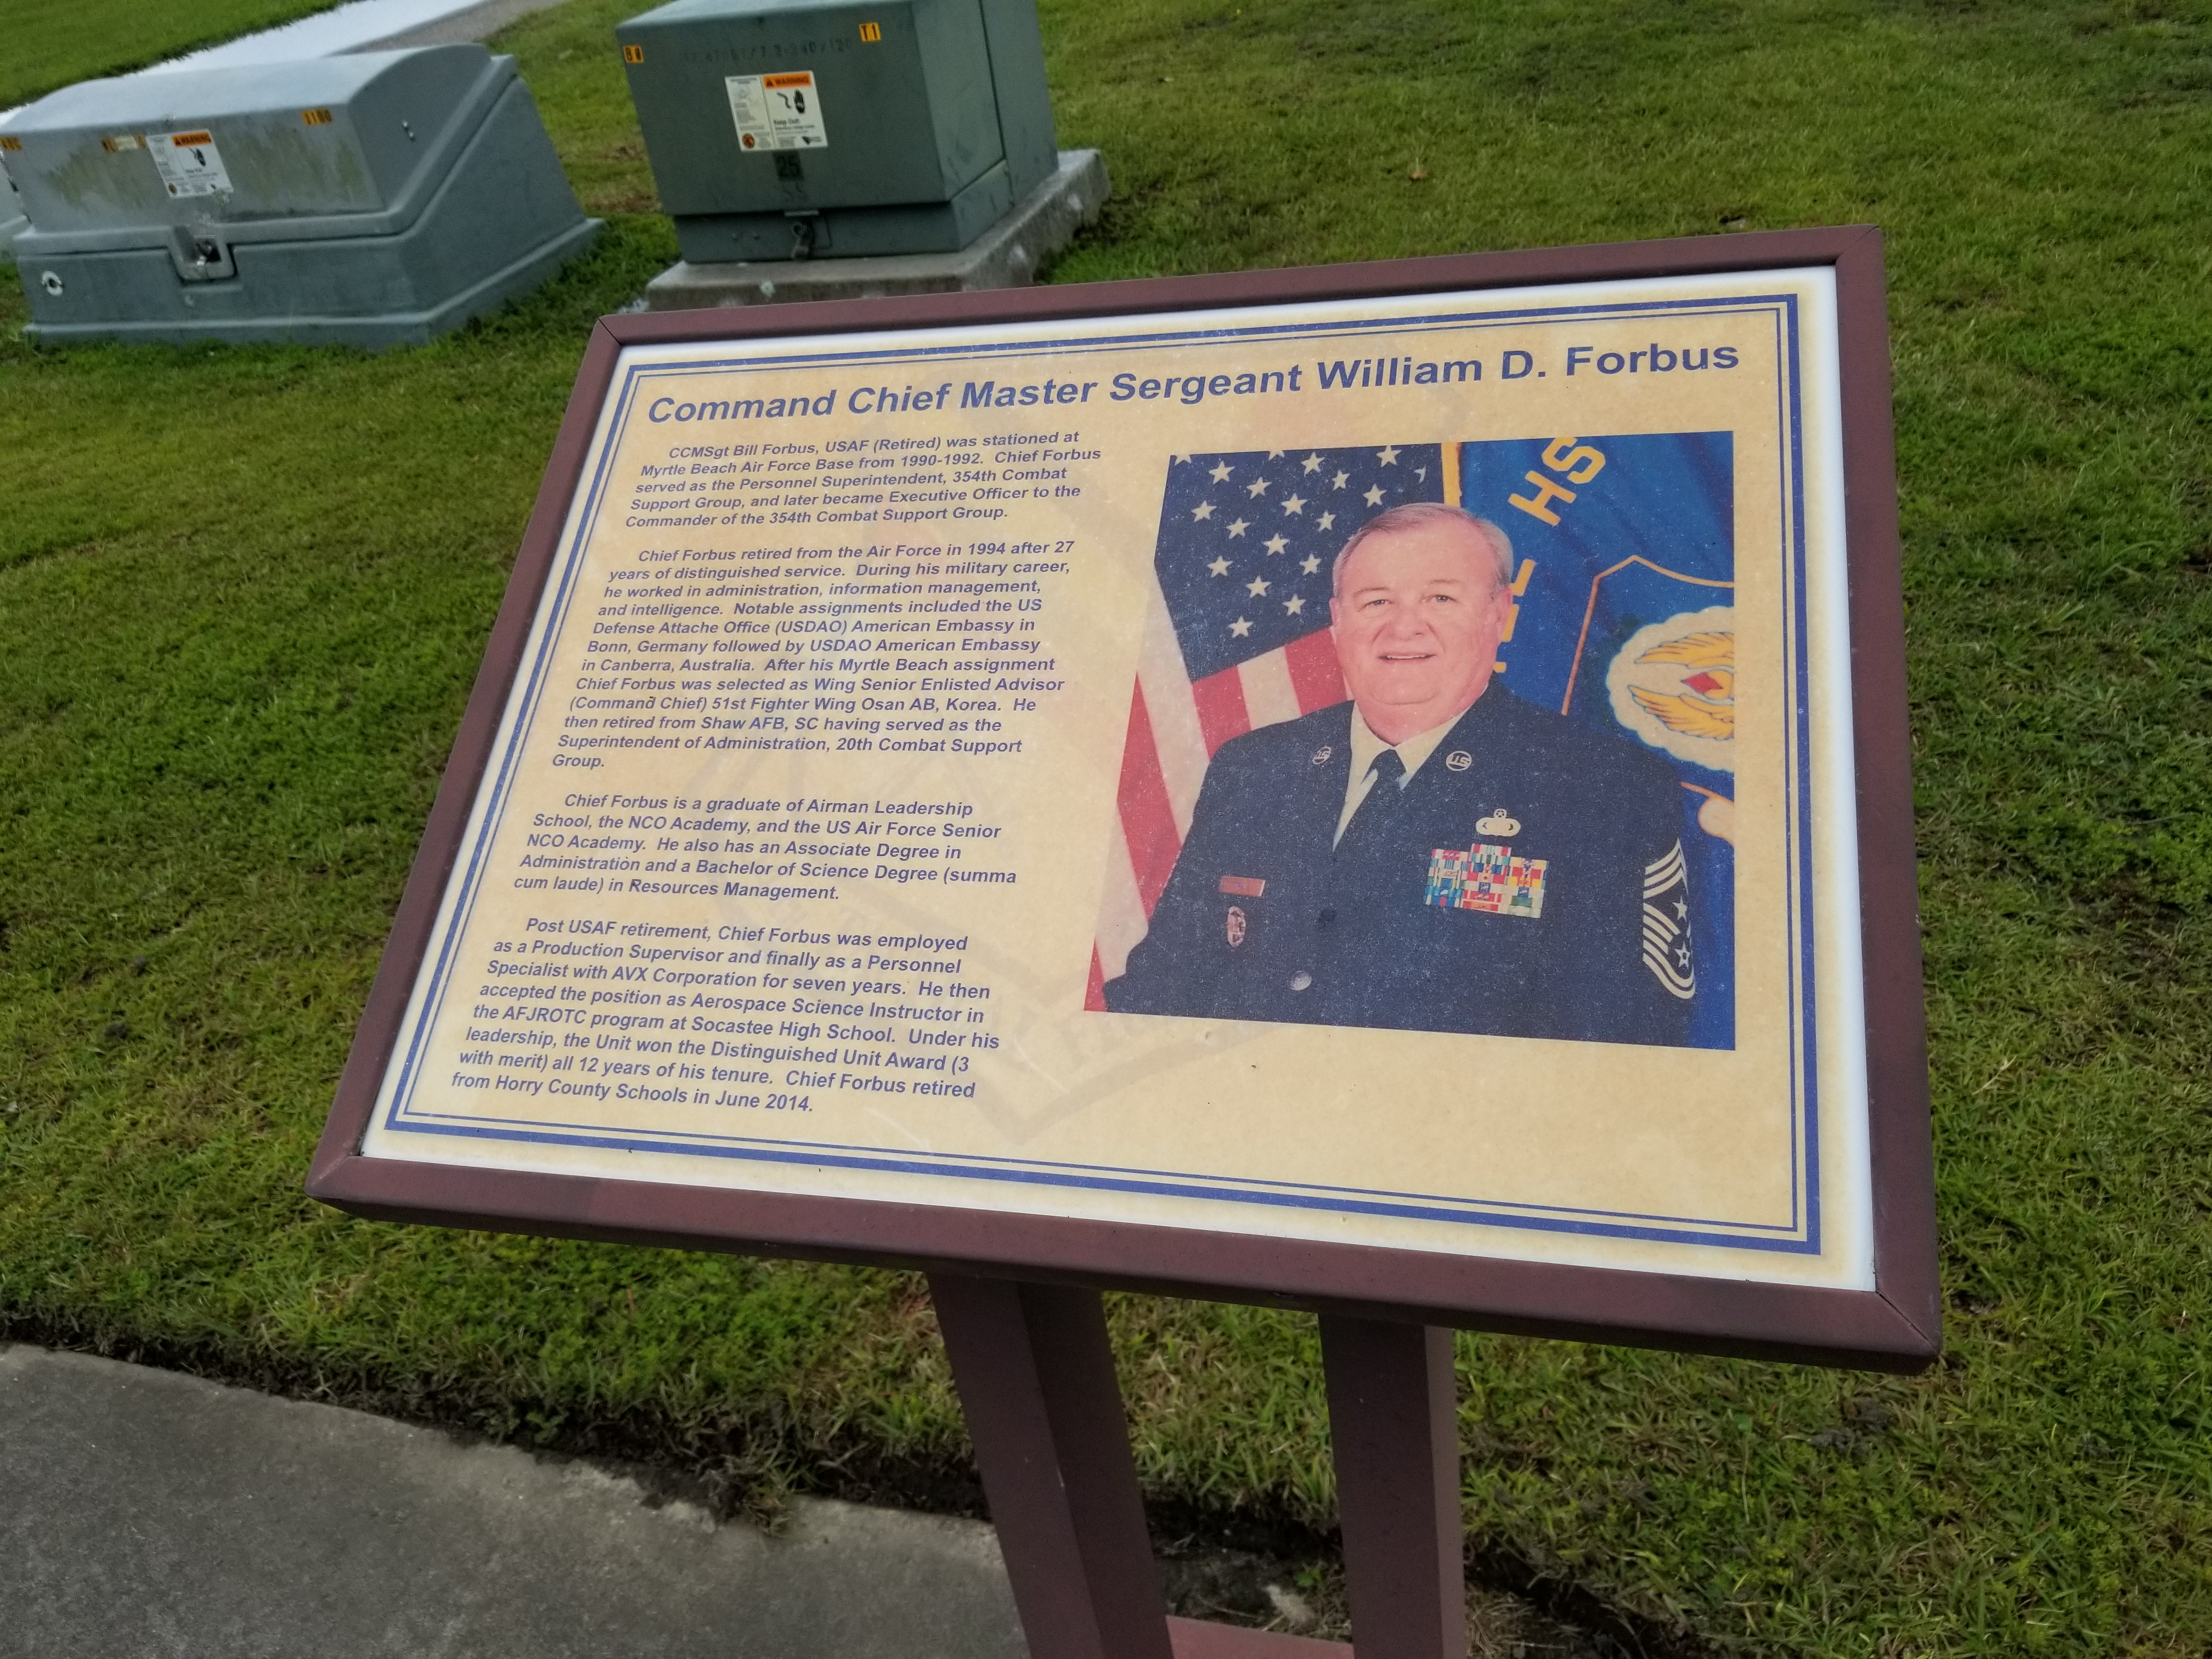 Command Chief Master Sergeant William D. Forbus Marker